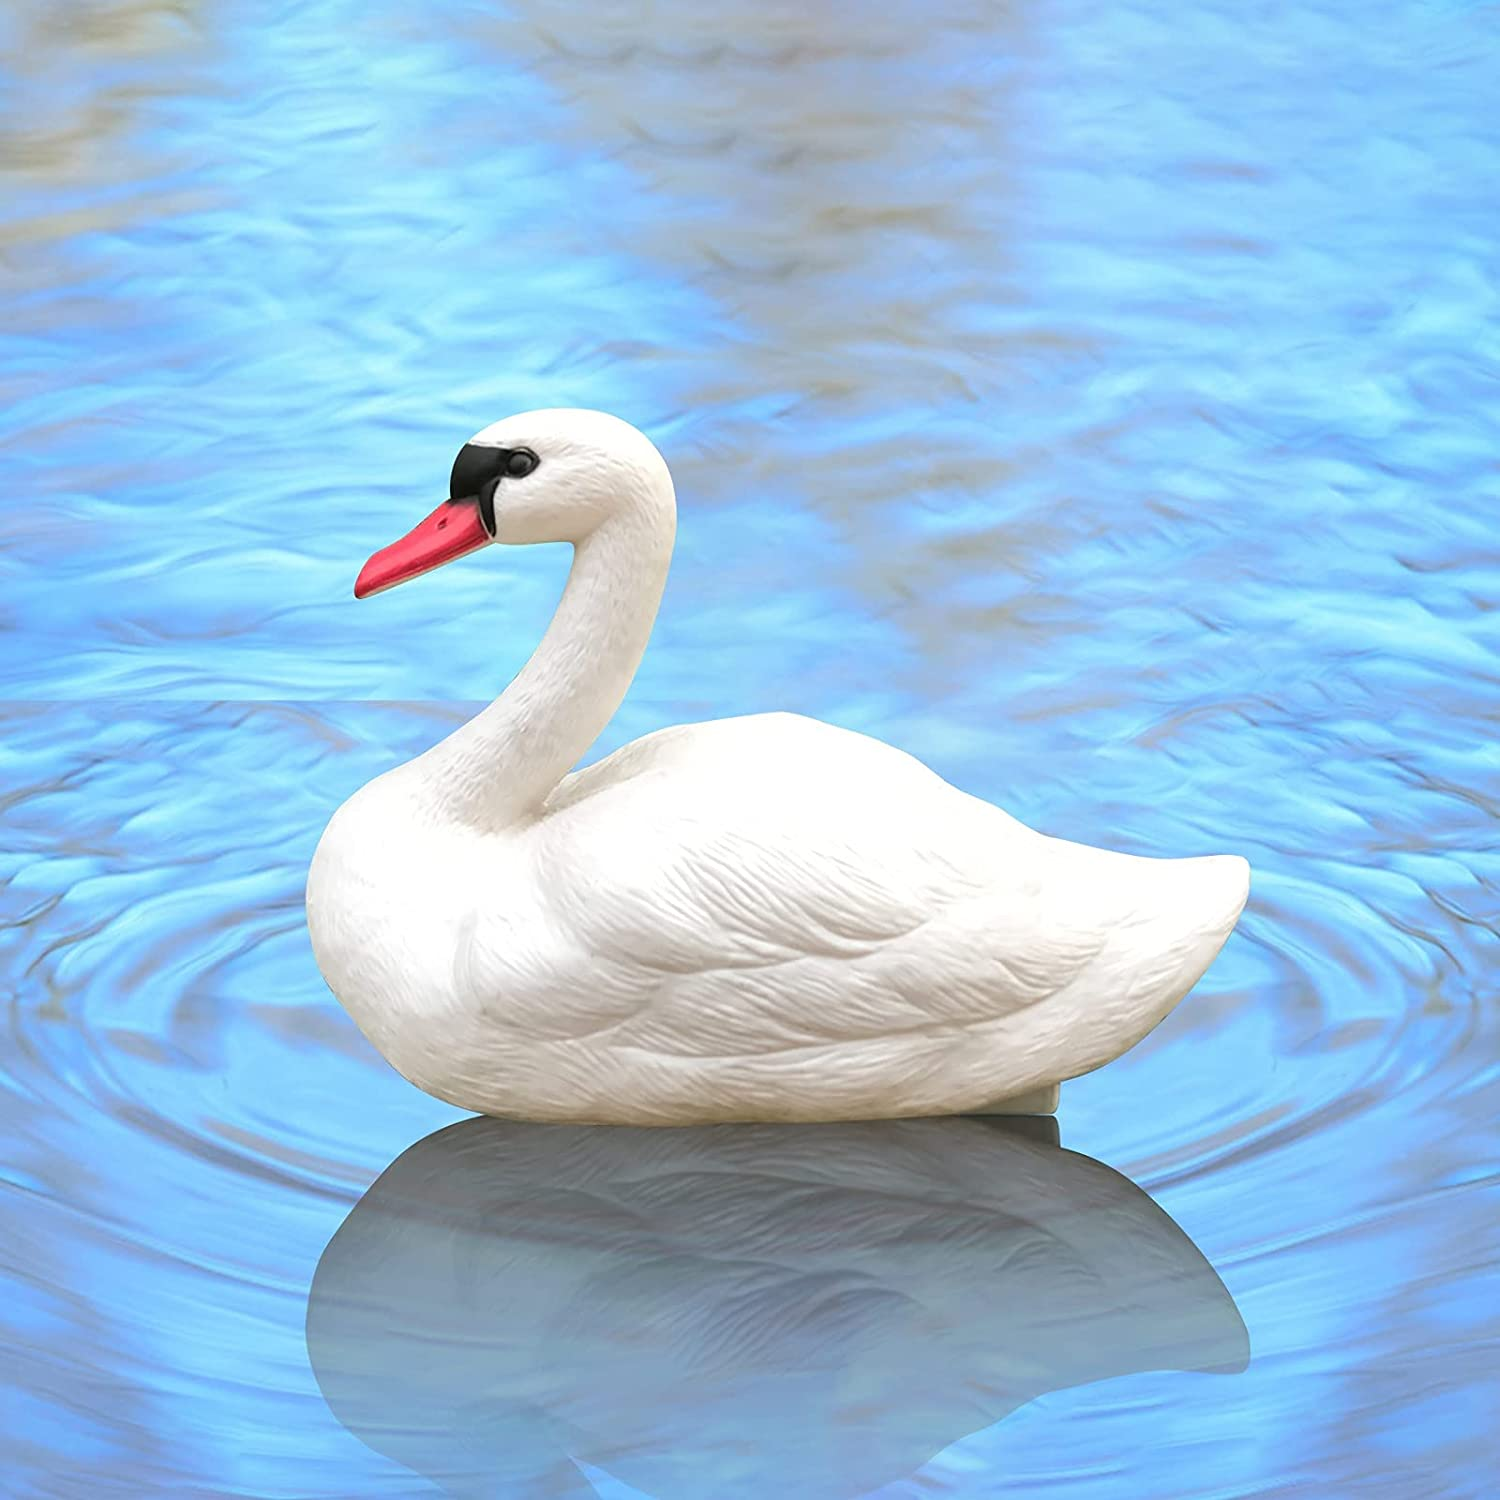 YUNAIYI Outdoor White Swan Ranking integrated 1st place Floating Simulation Max 45% OFF Garden Statue An